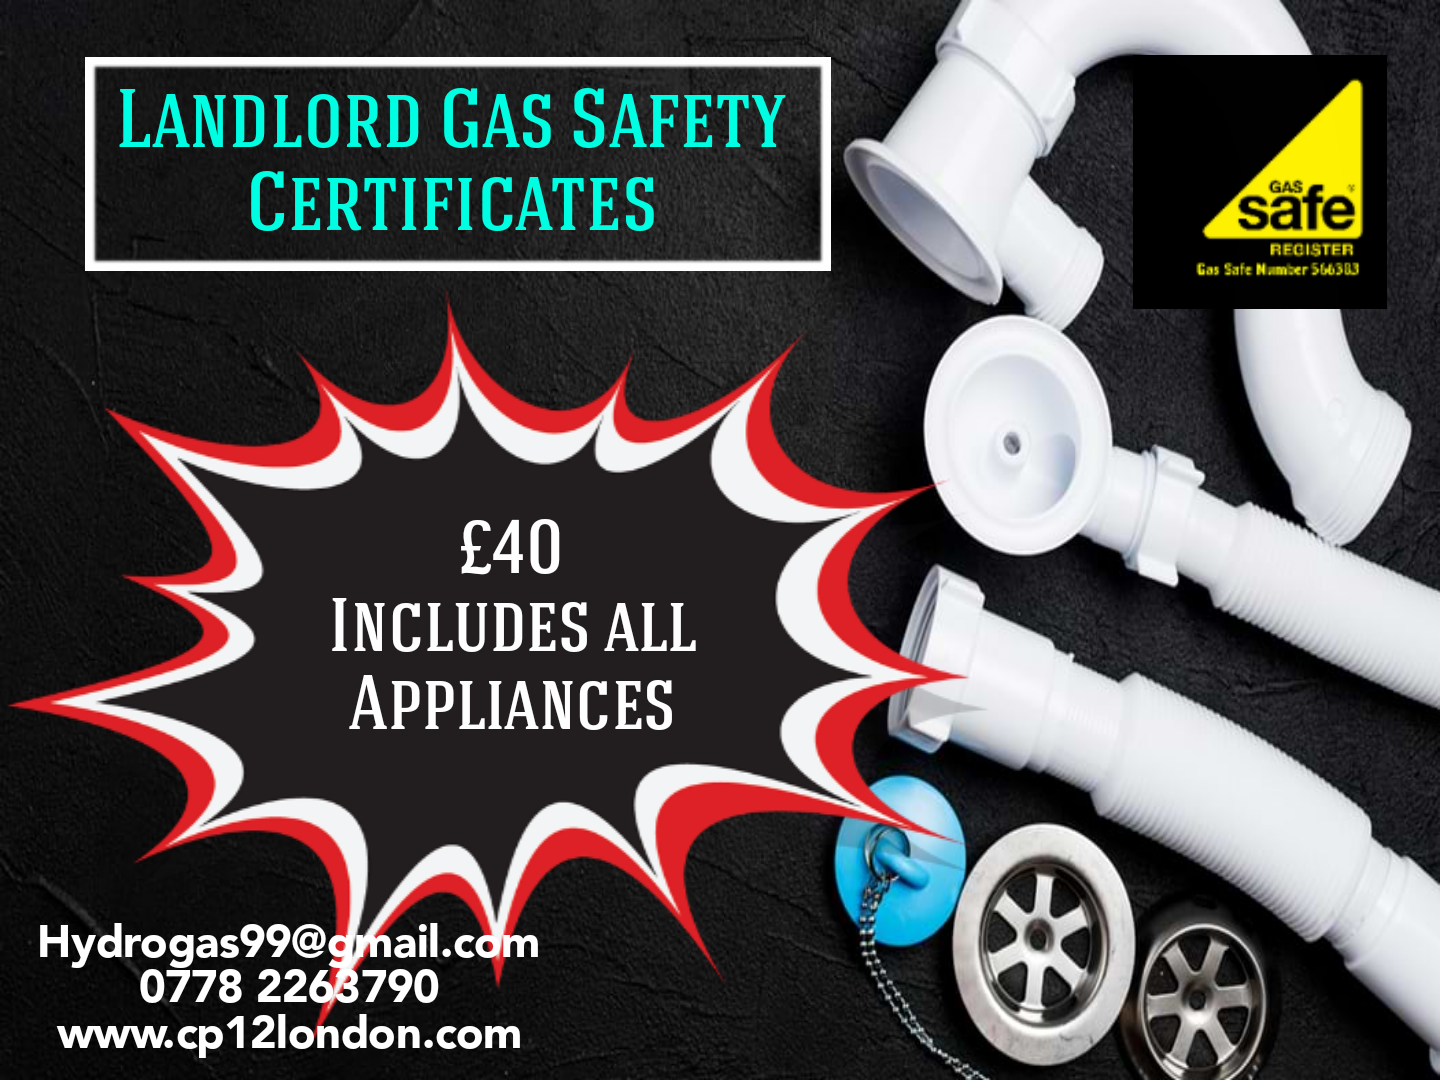 Enfield Landlord Gas Safety Inspections